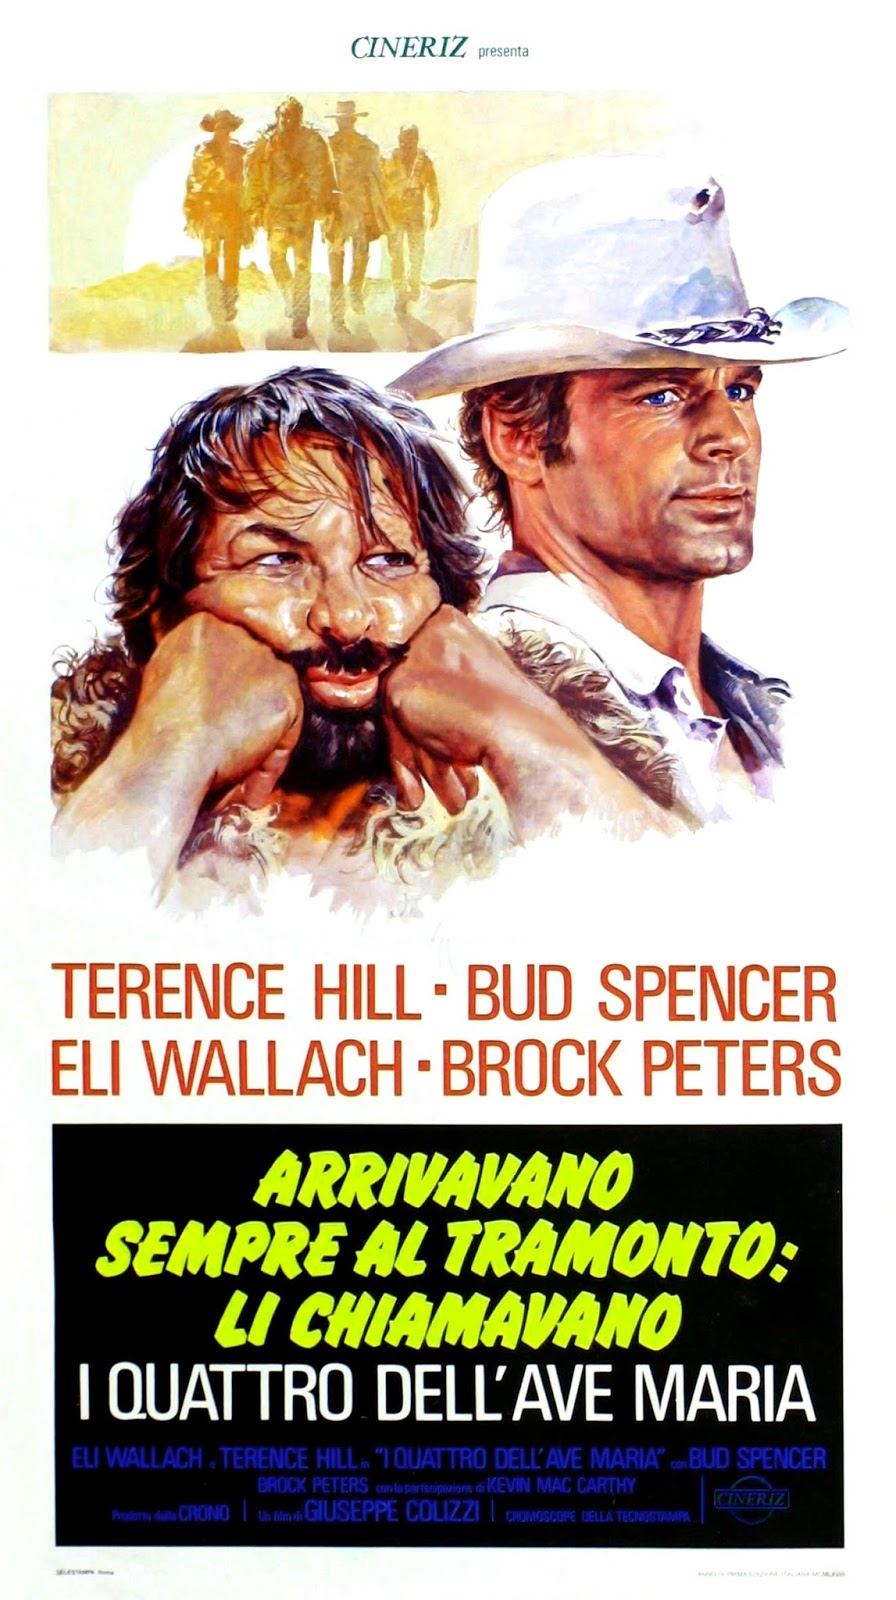 Filmes Bud Spencer E Terence Hill Dublado intended for le plein de super: terence hill & bud spencer dans les 4 de l'ave